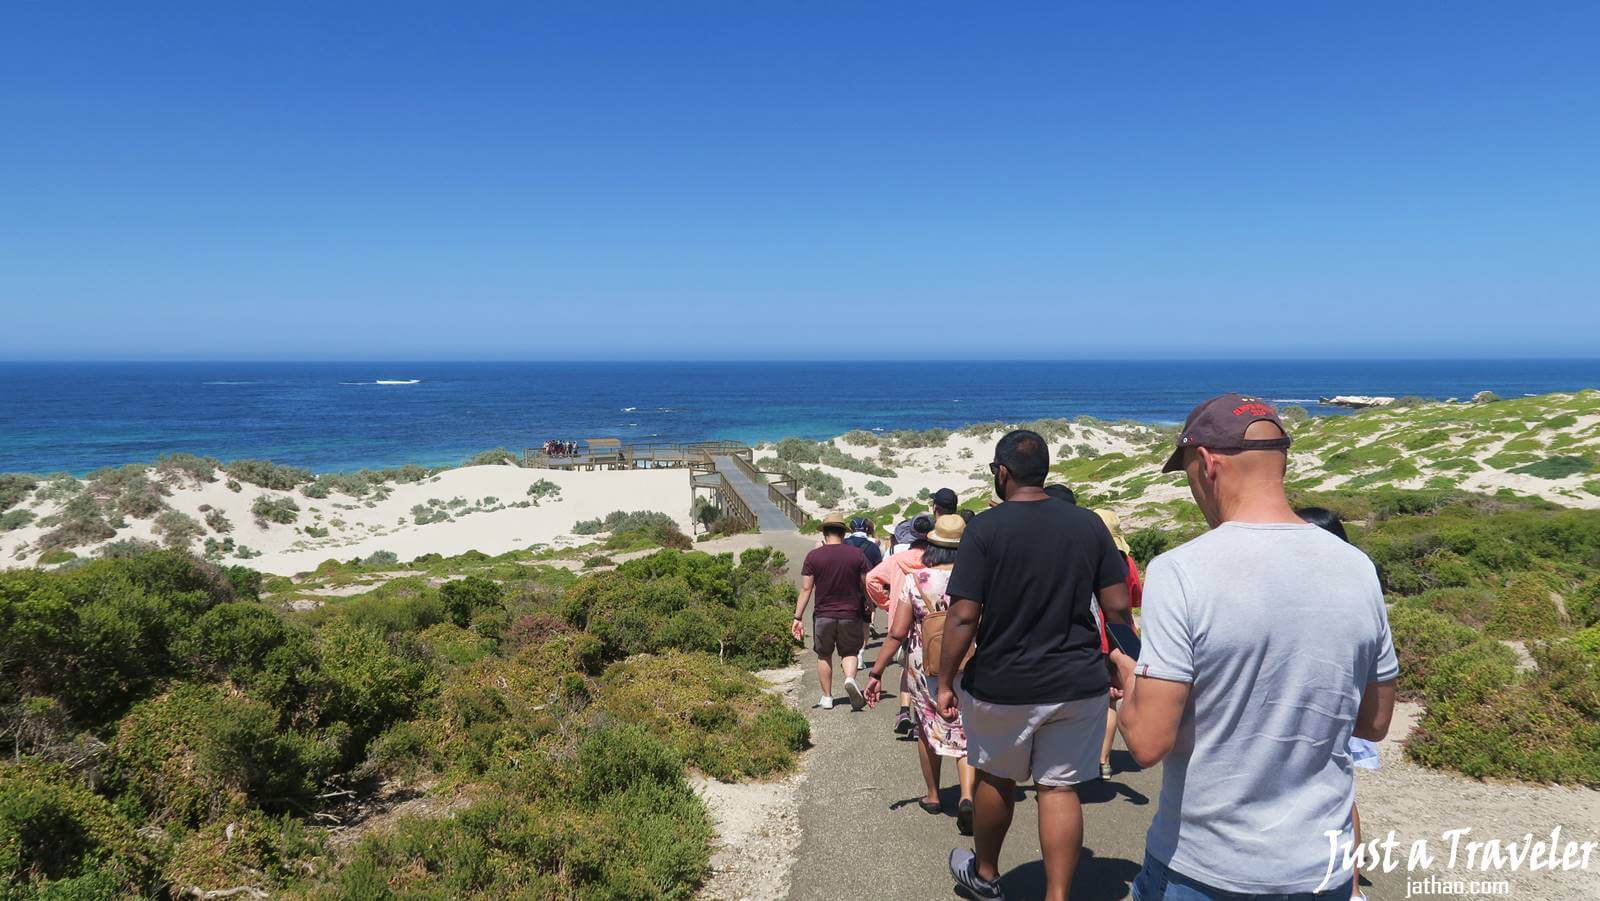 Adelaide-Kangaroo Island-Seal Bay Conservation Park-Transportation-Ferry-Attractions-Itineraries-Recommendation-Travel Blogs-Back-Pack Travel-Independent Travel-Tour-Day Tour-Two Day Tour-Adelaide